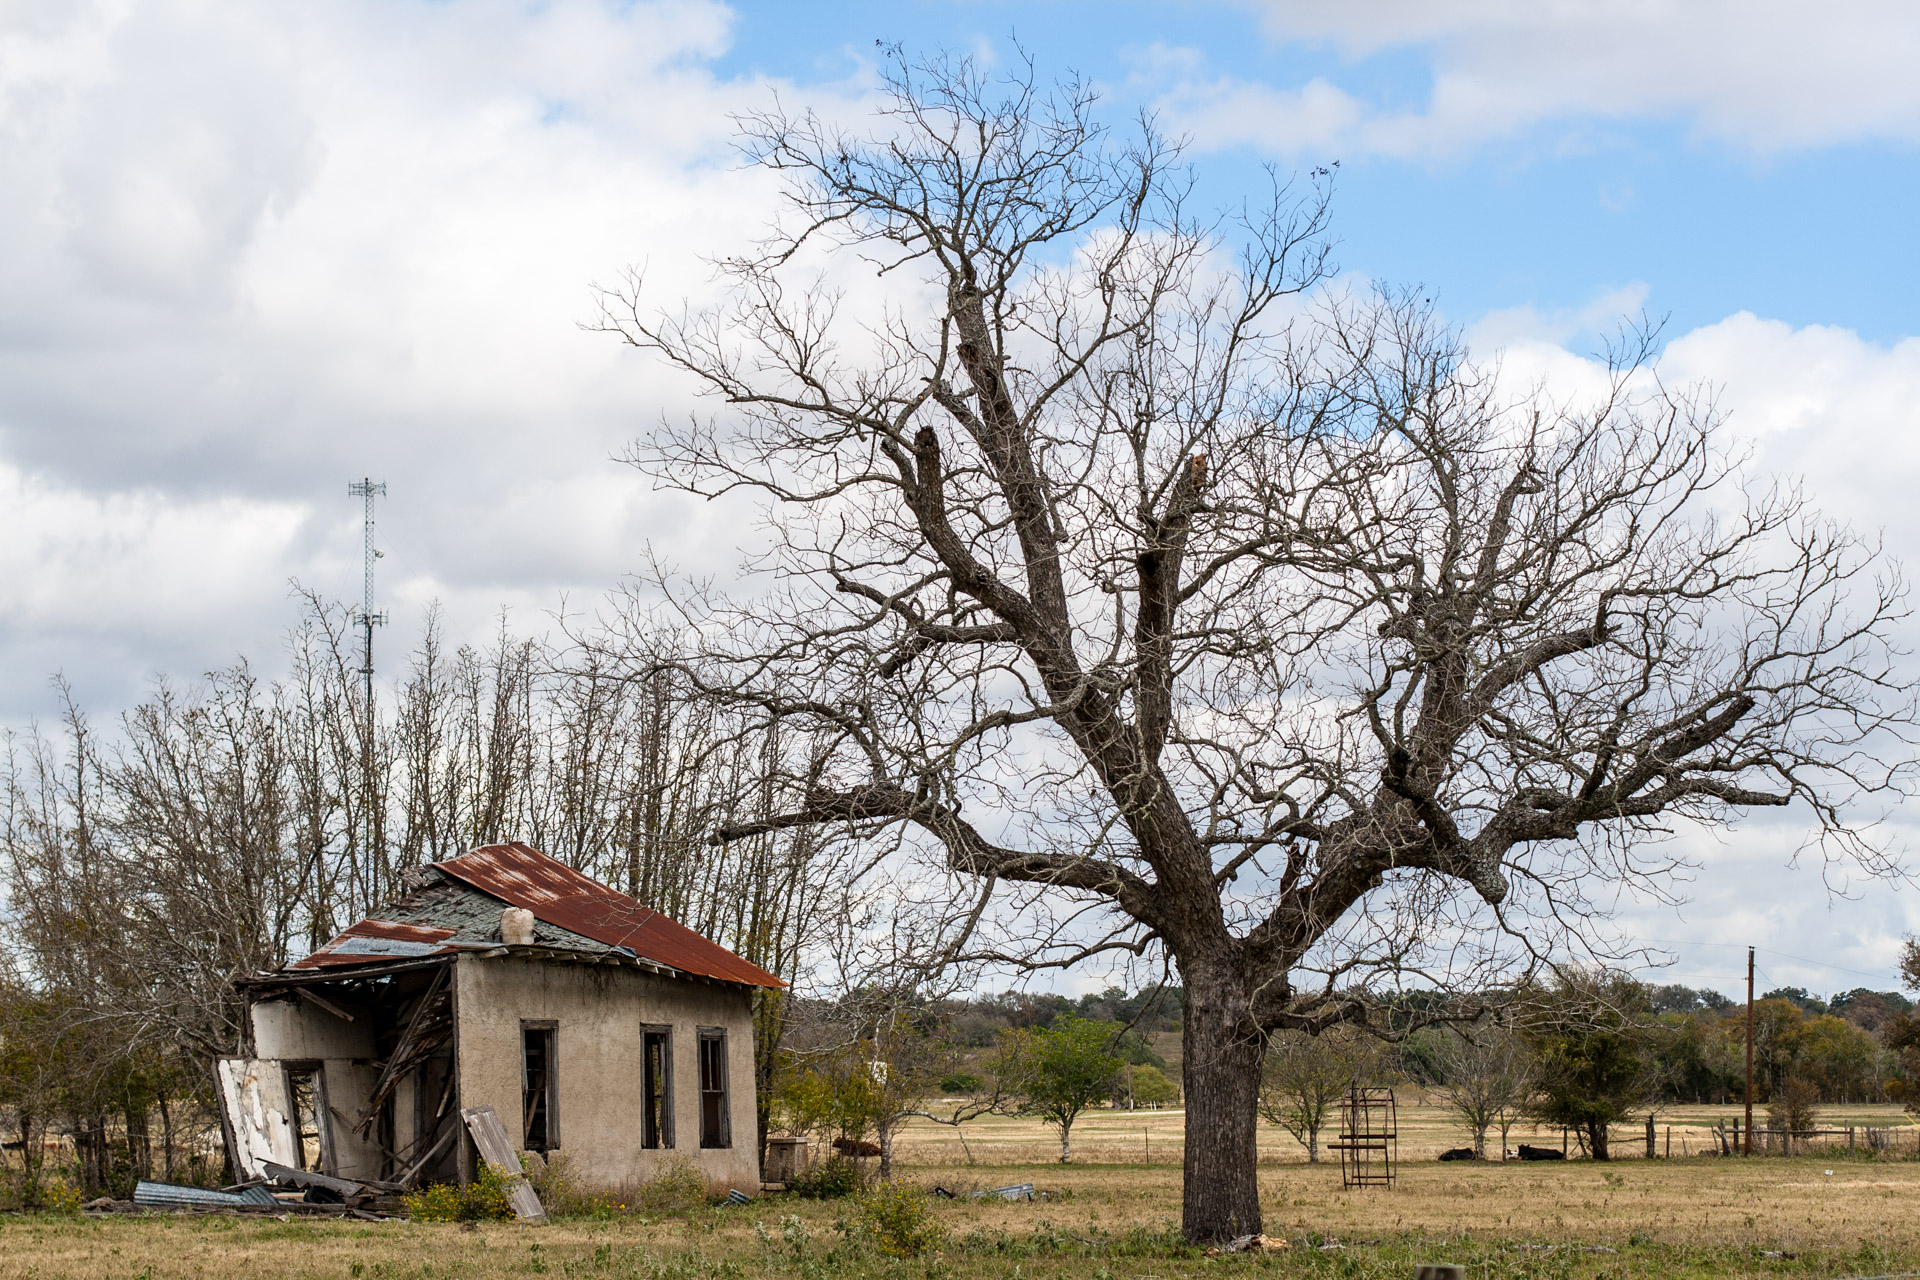 La Grange, Texas - An Impacted Roof Farmhouse (left far)